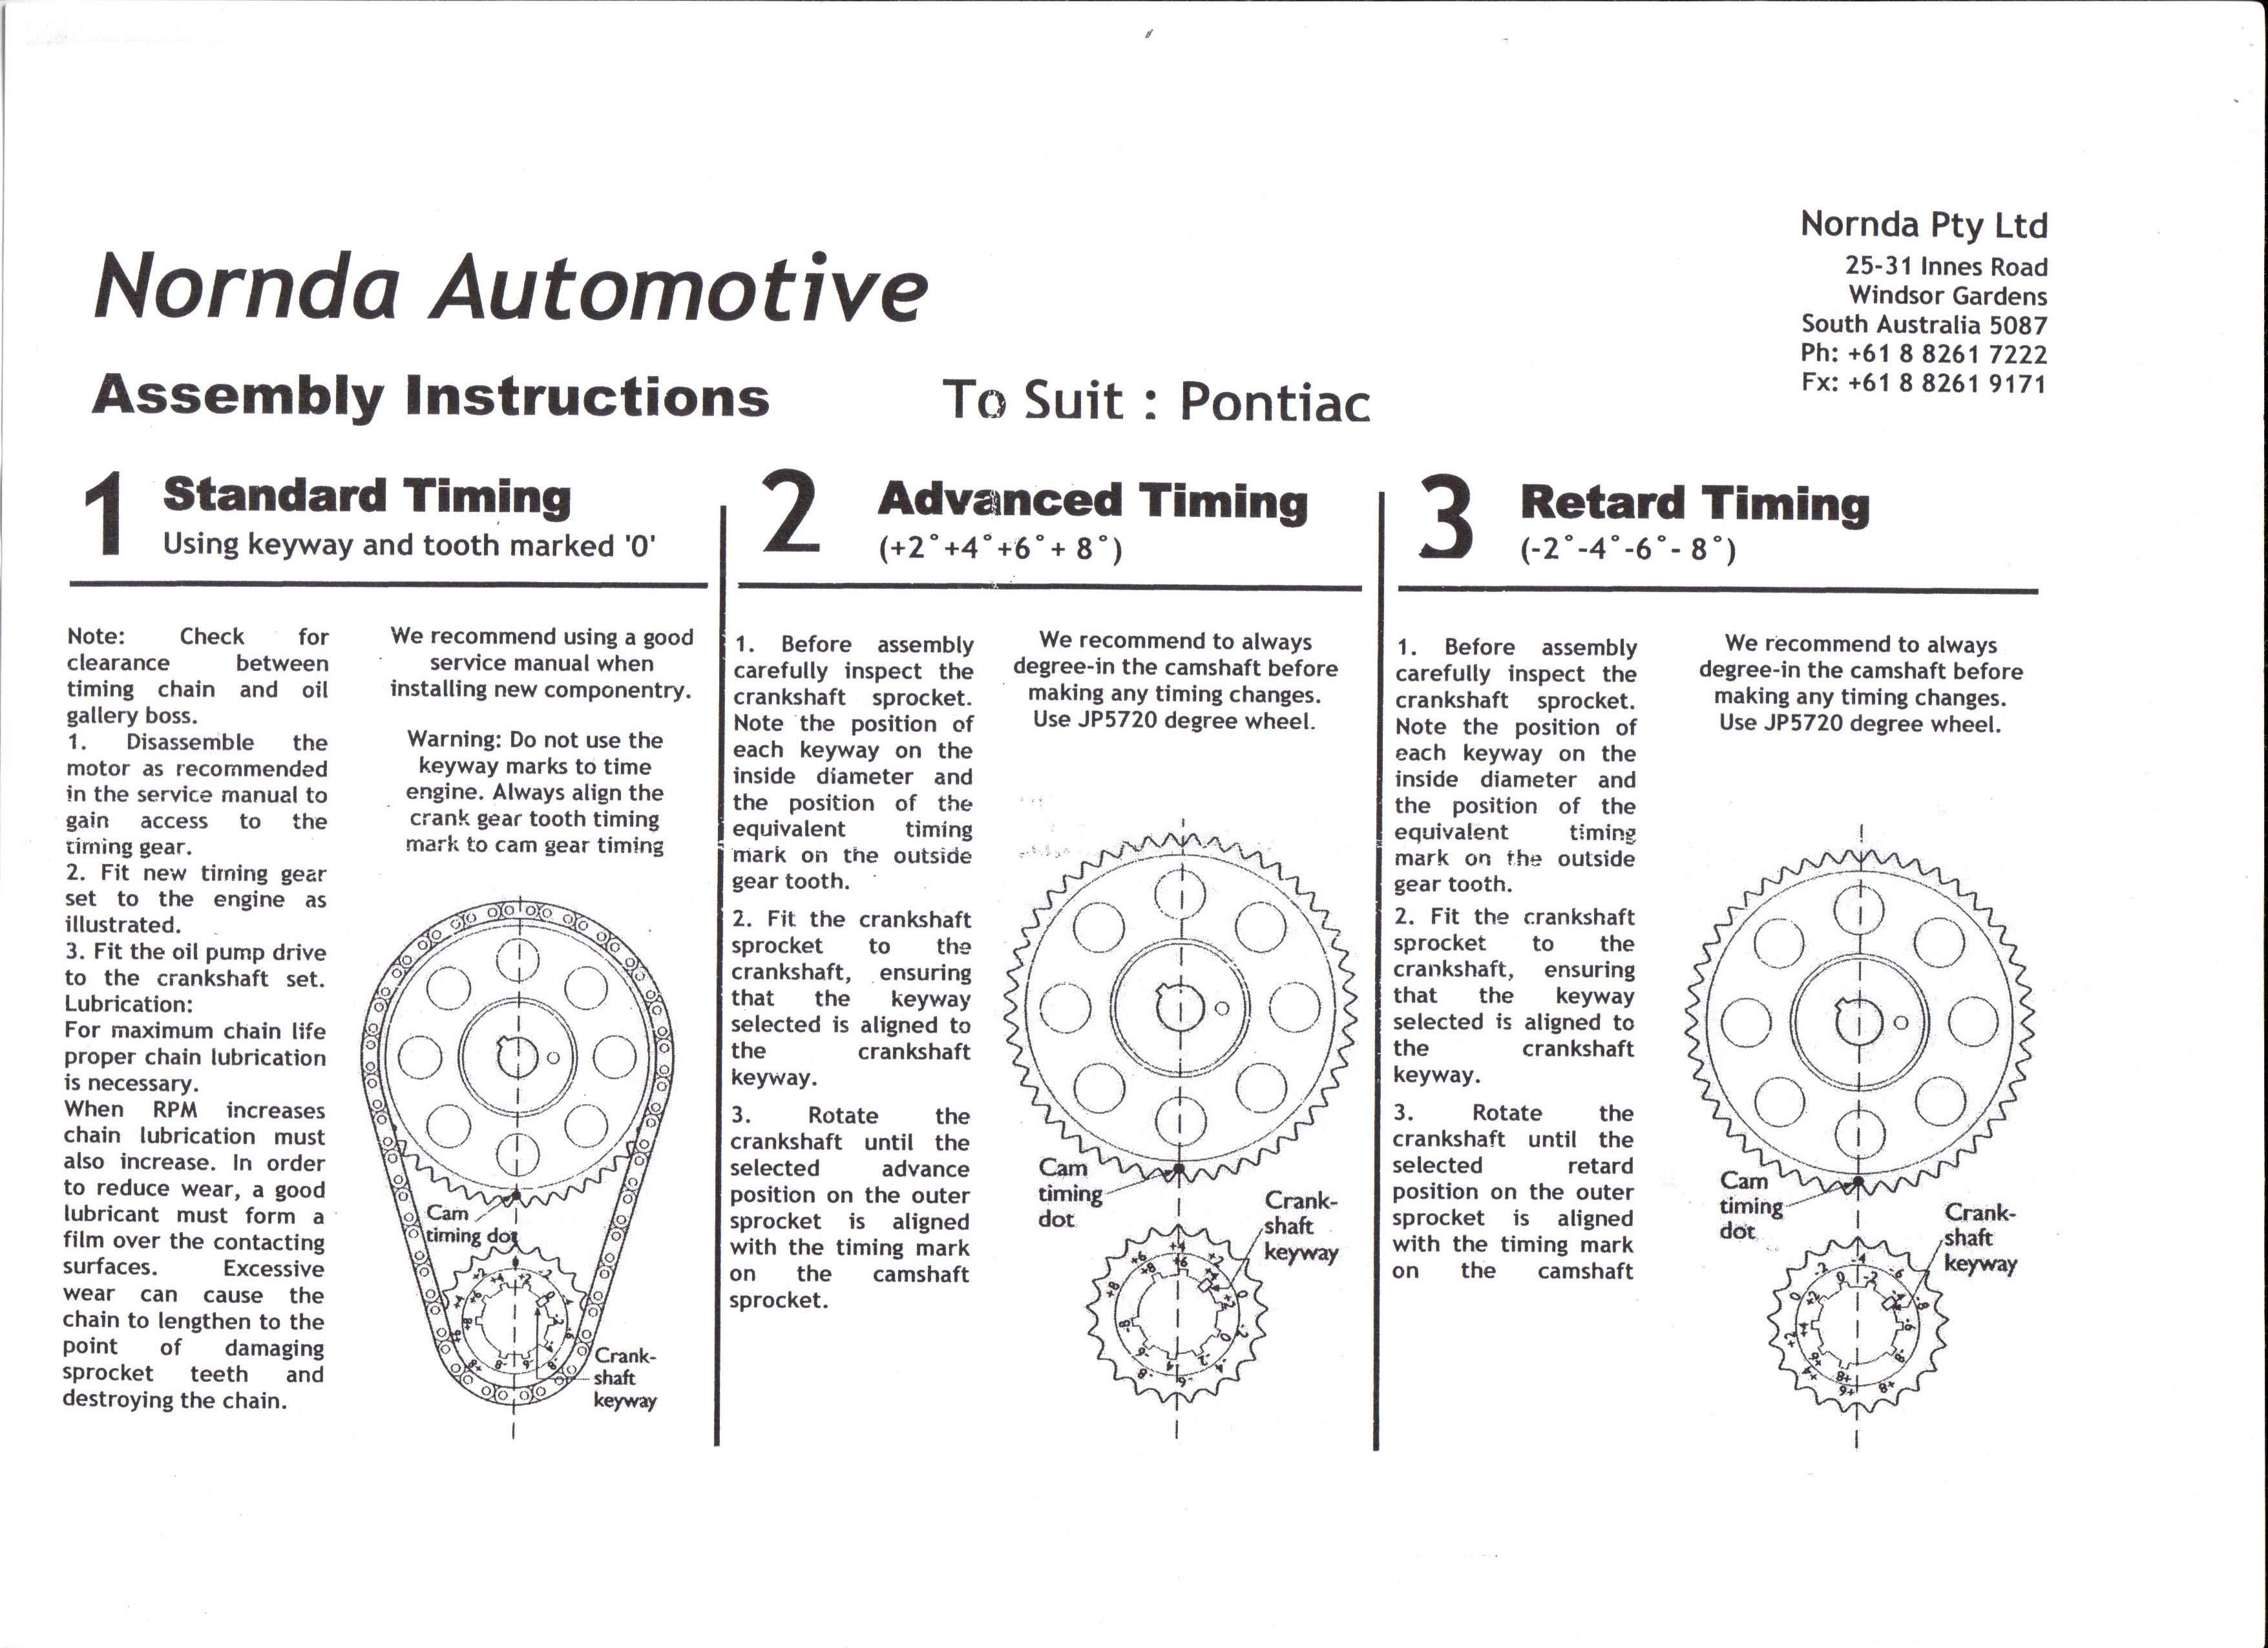 ... JPP and Rollmaster Timing Set Instructions ...